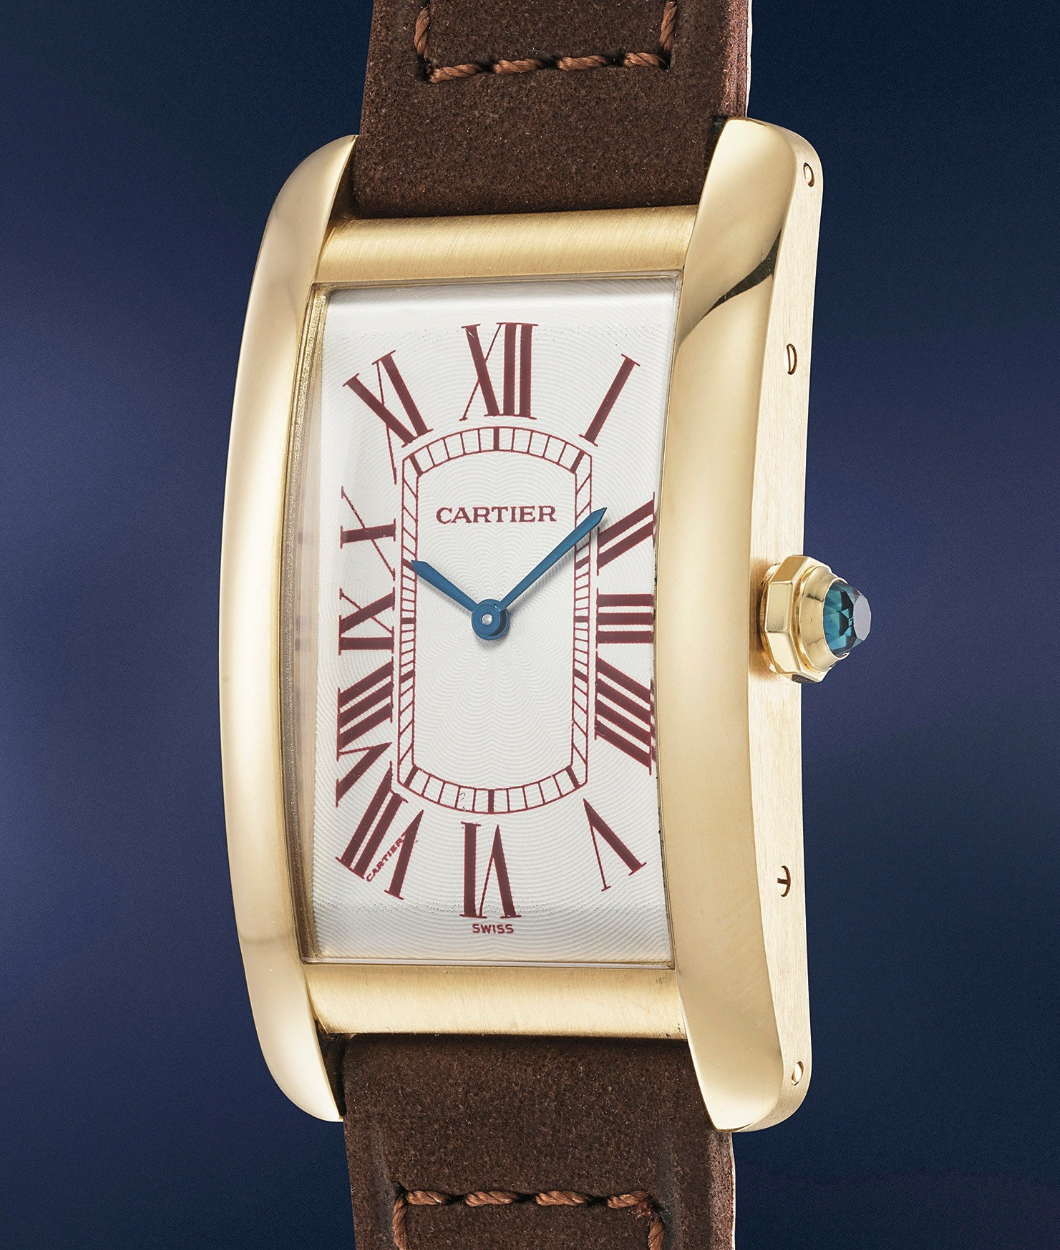 bargains at Phillips Geneva Watch Auction XII